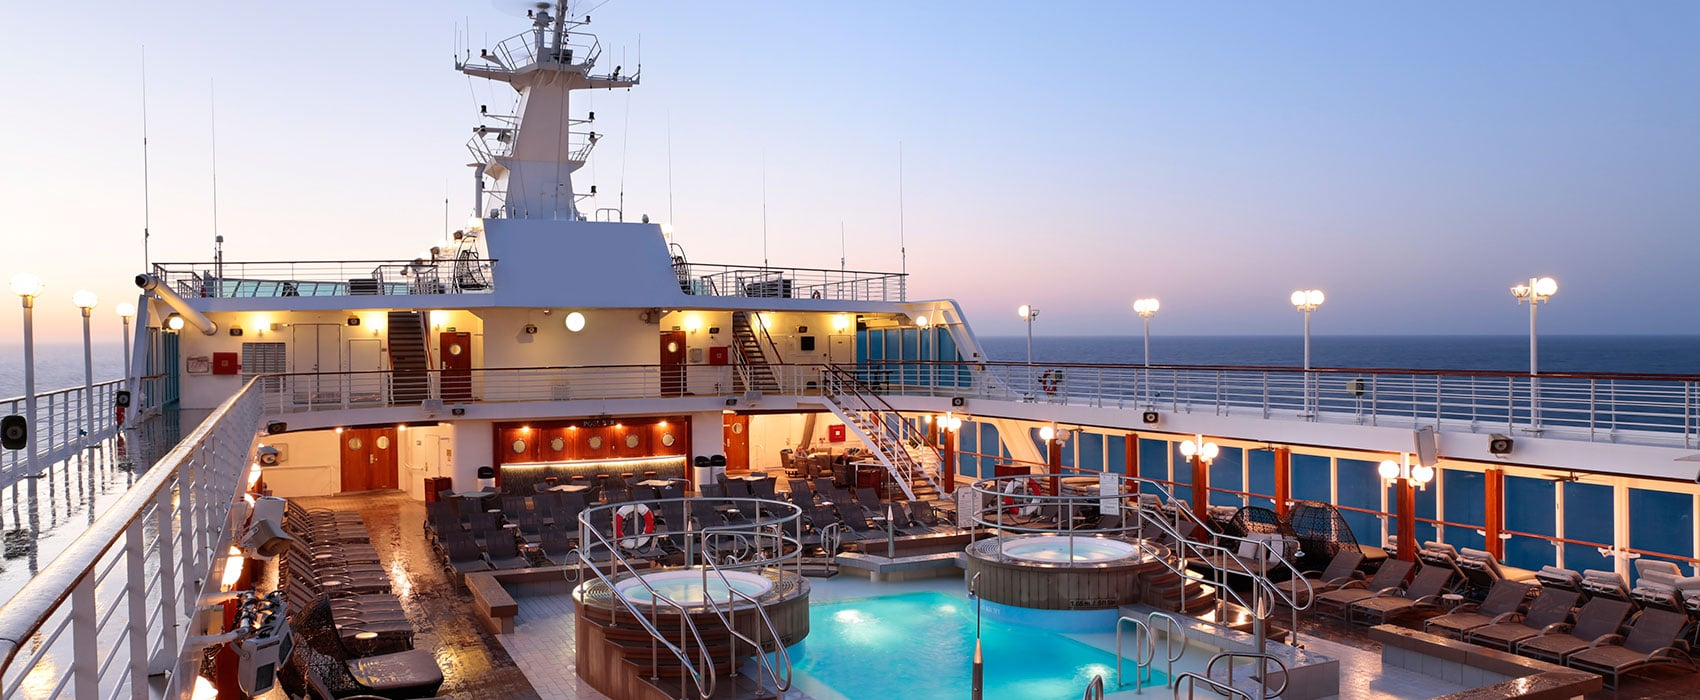 Desire Barcelona-Rome Cruise | Ship Specifications